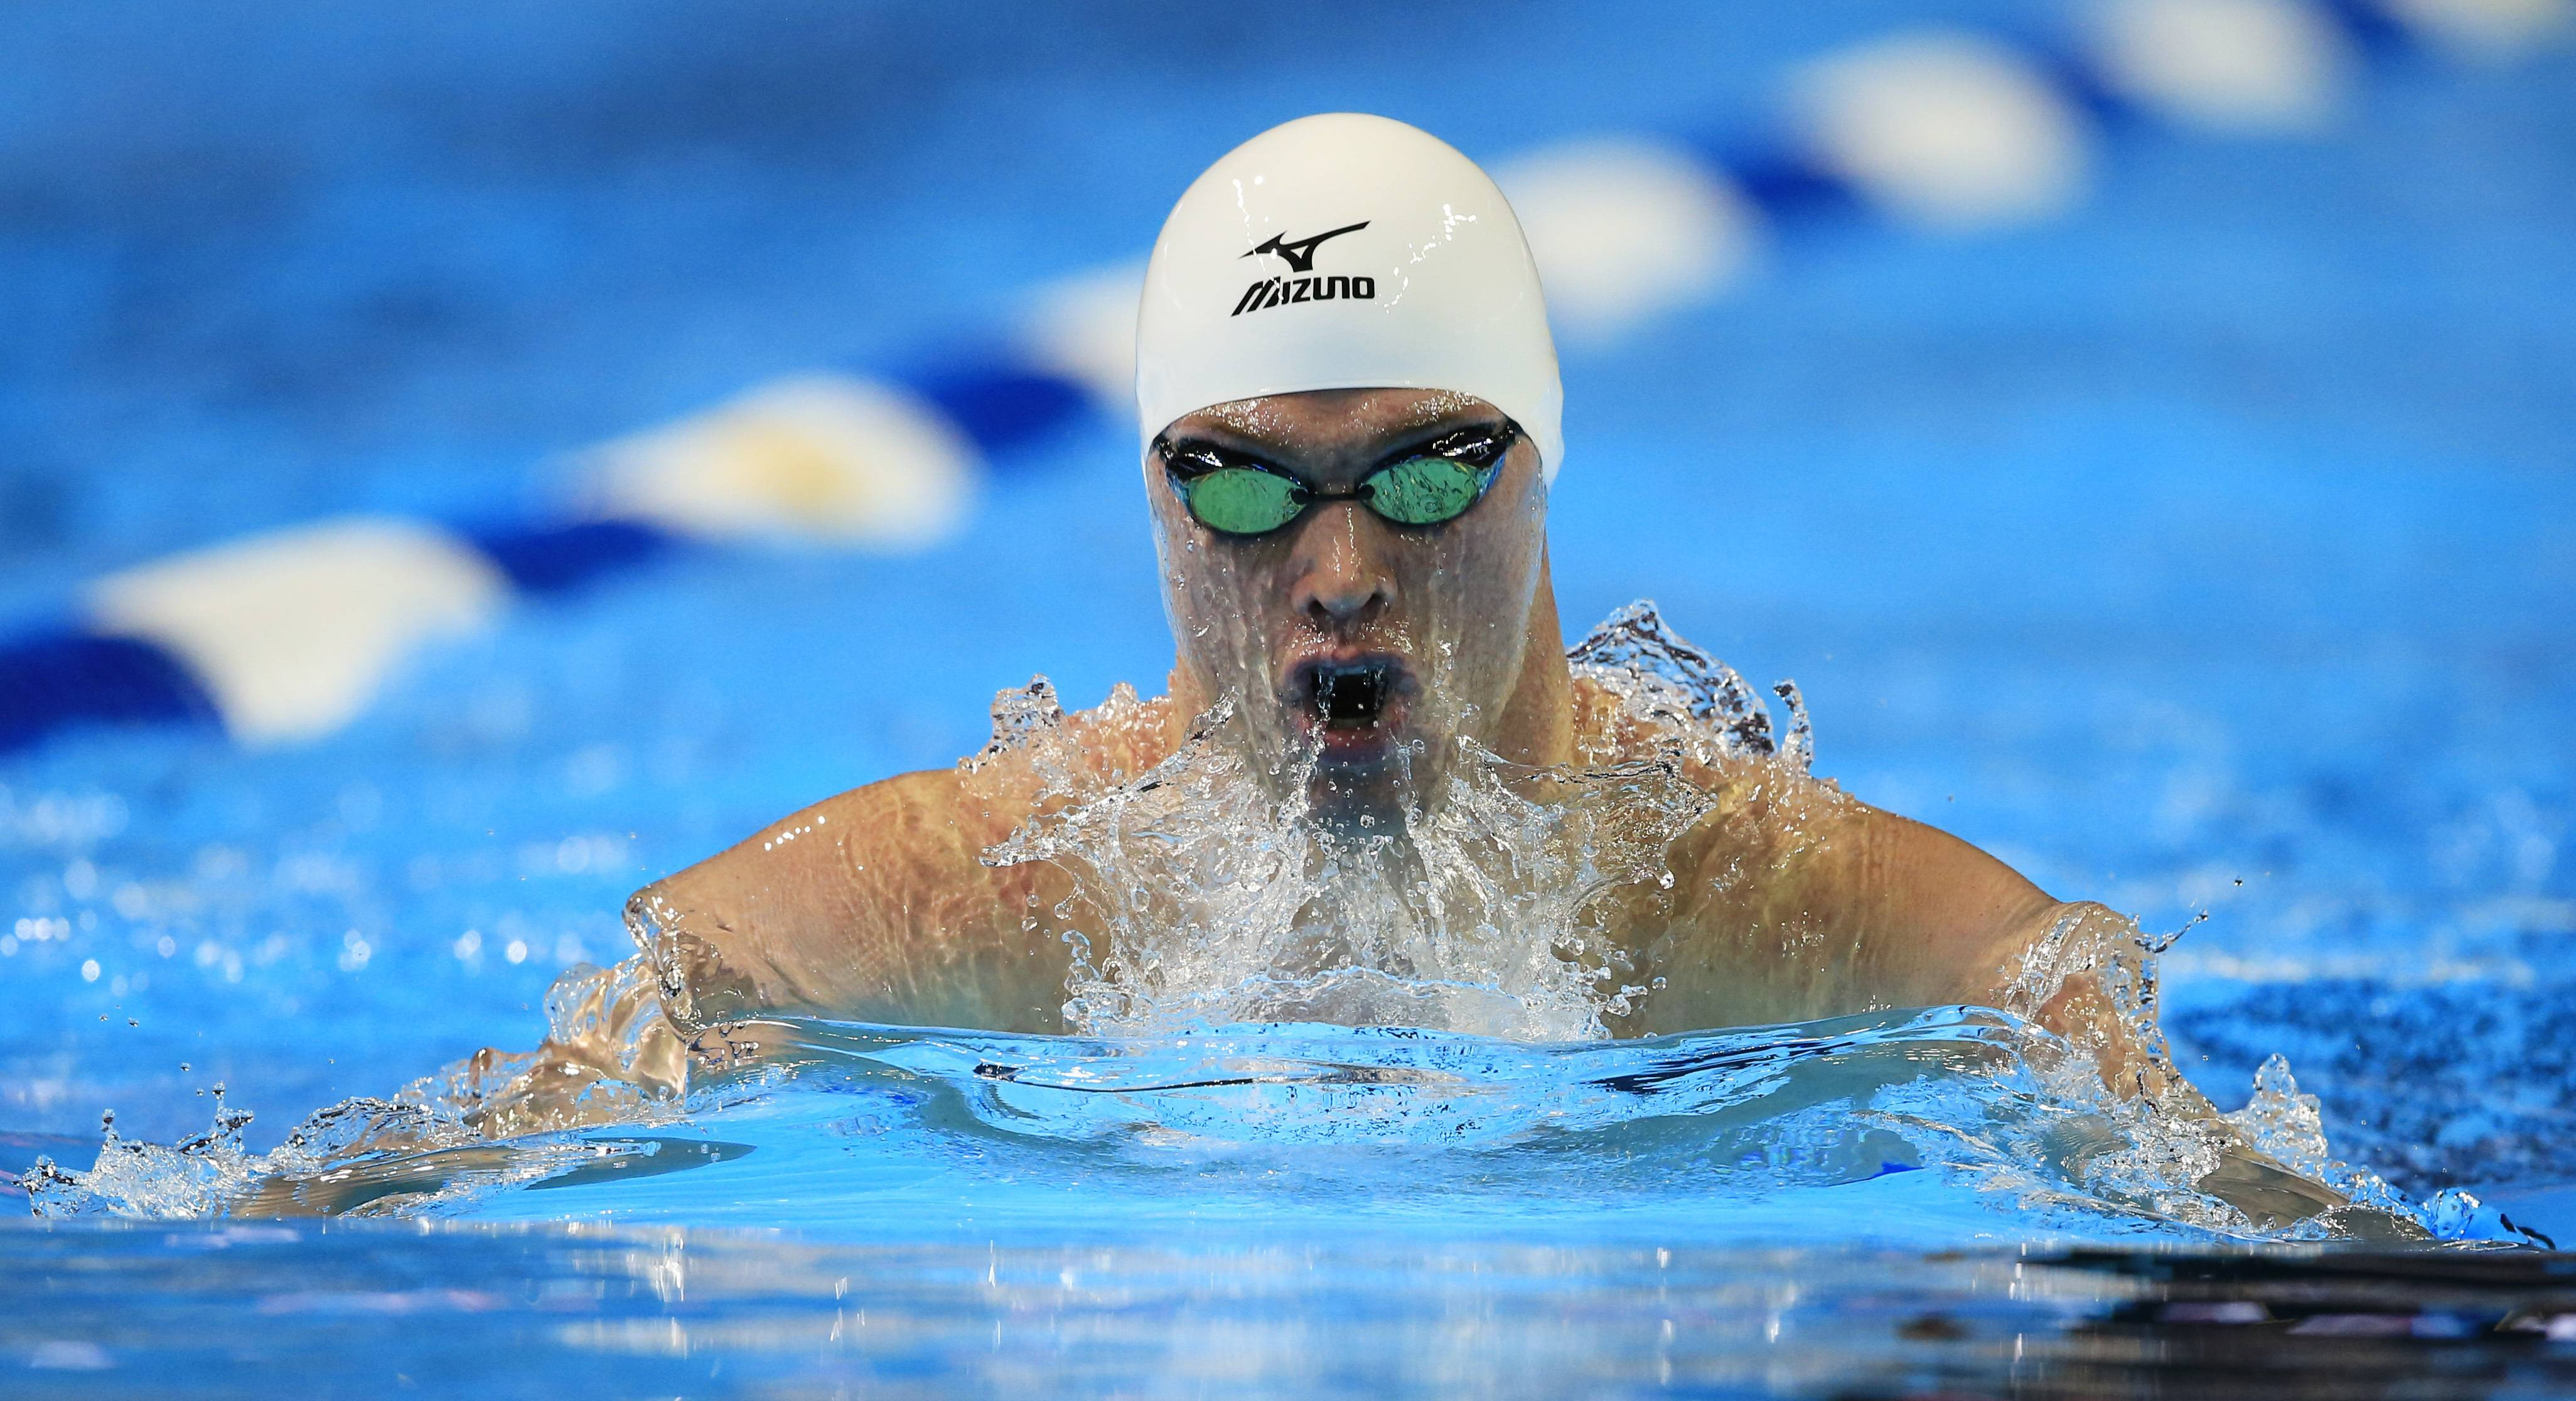 Kevin Cordes Heads For The Top Qualifying Time In The 200 Meter Breaststroke  At The